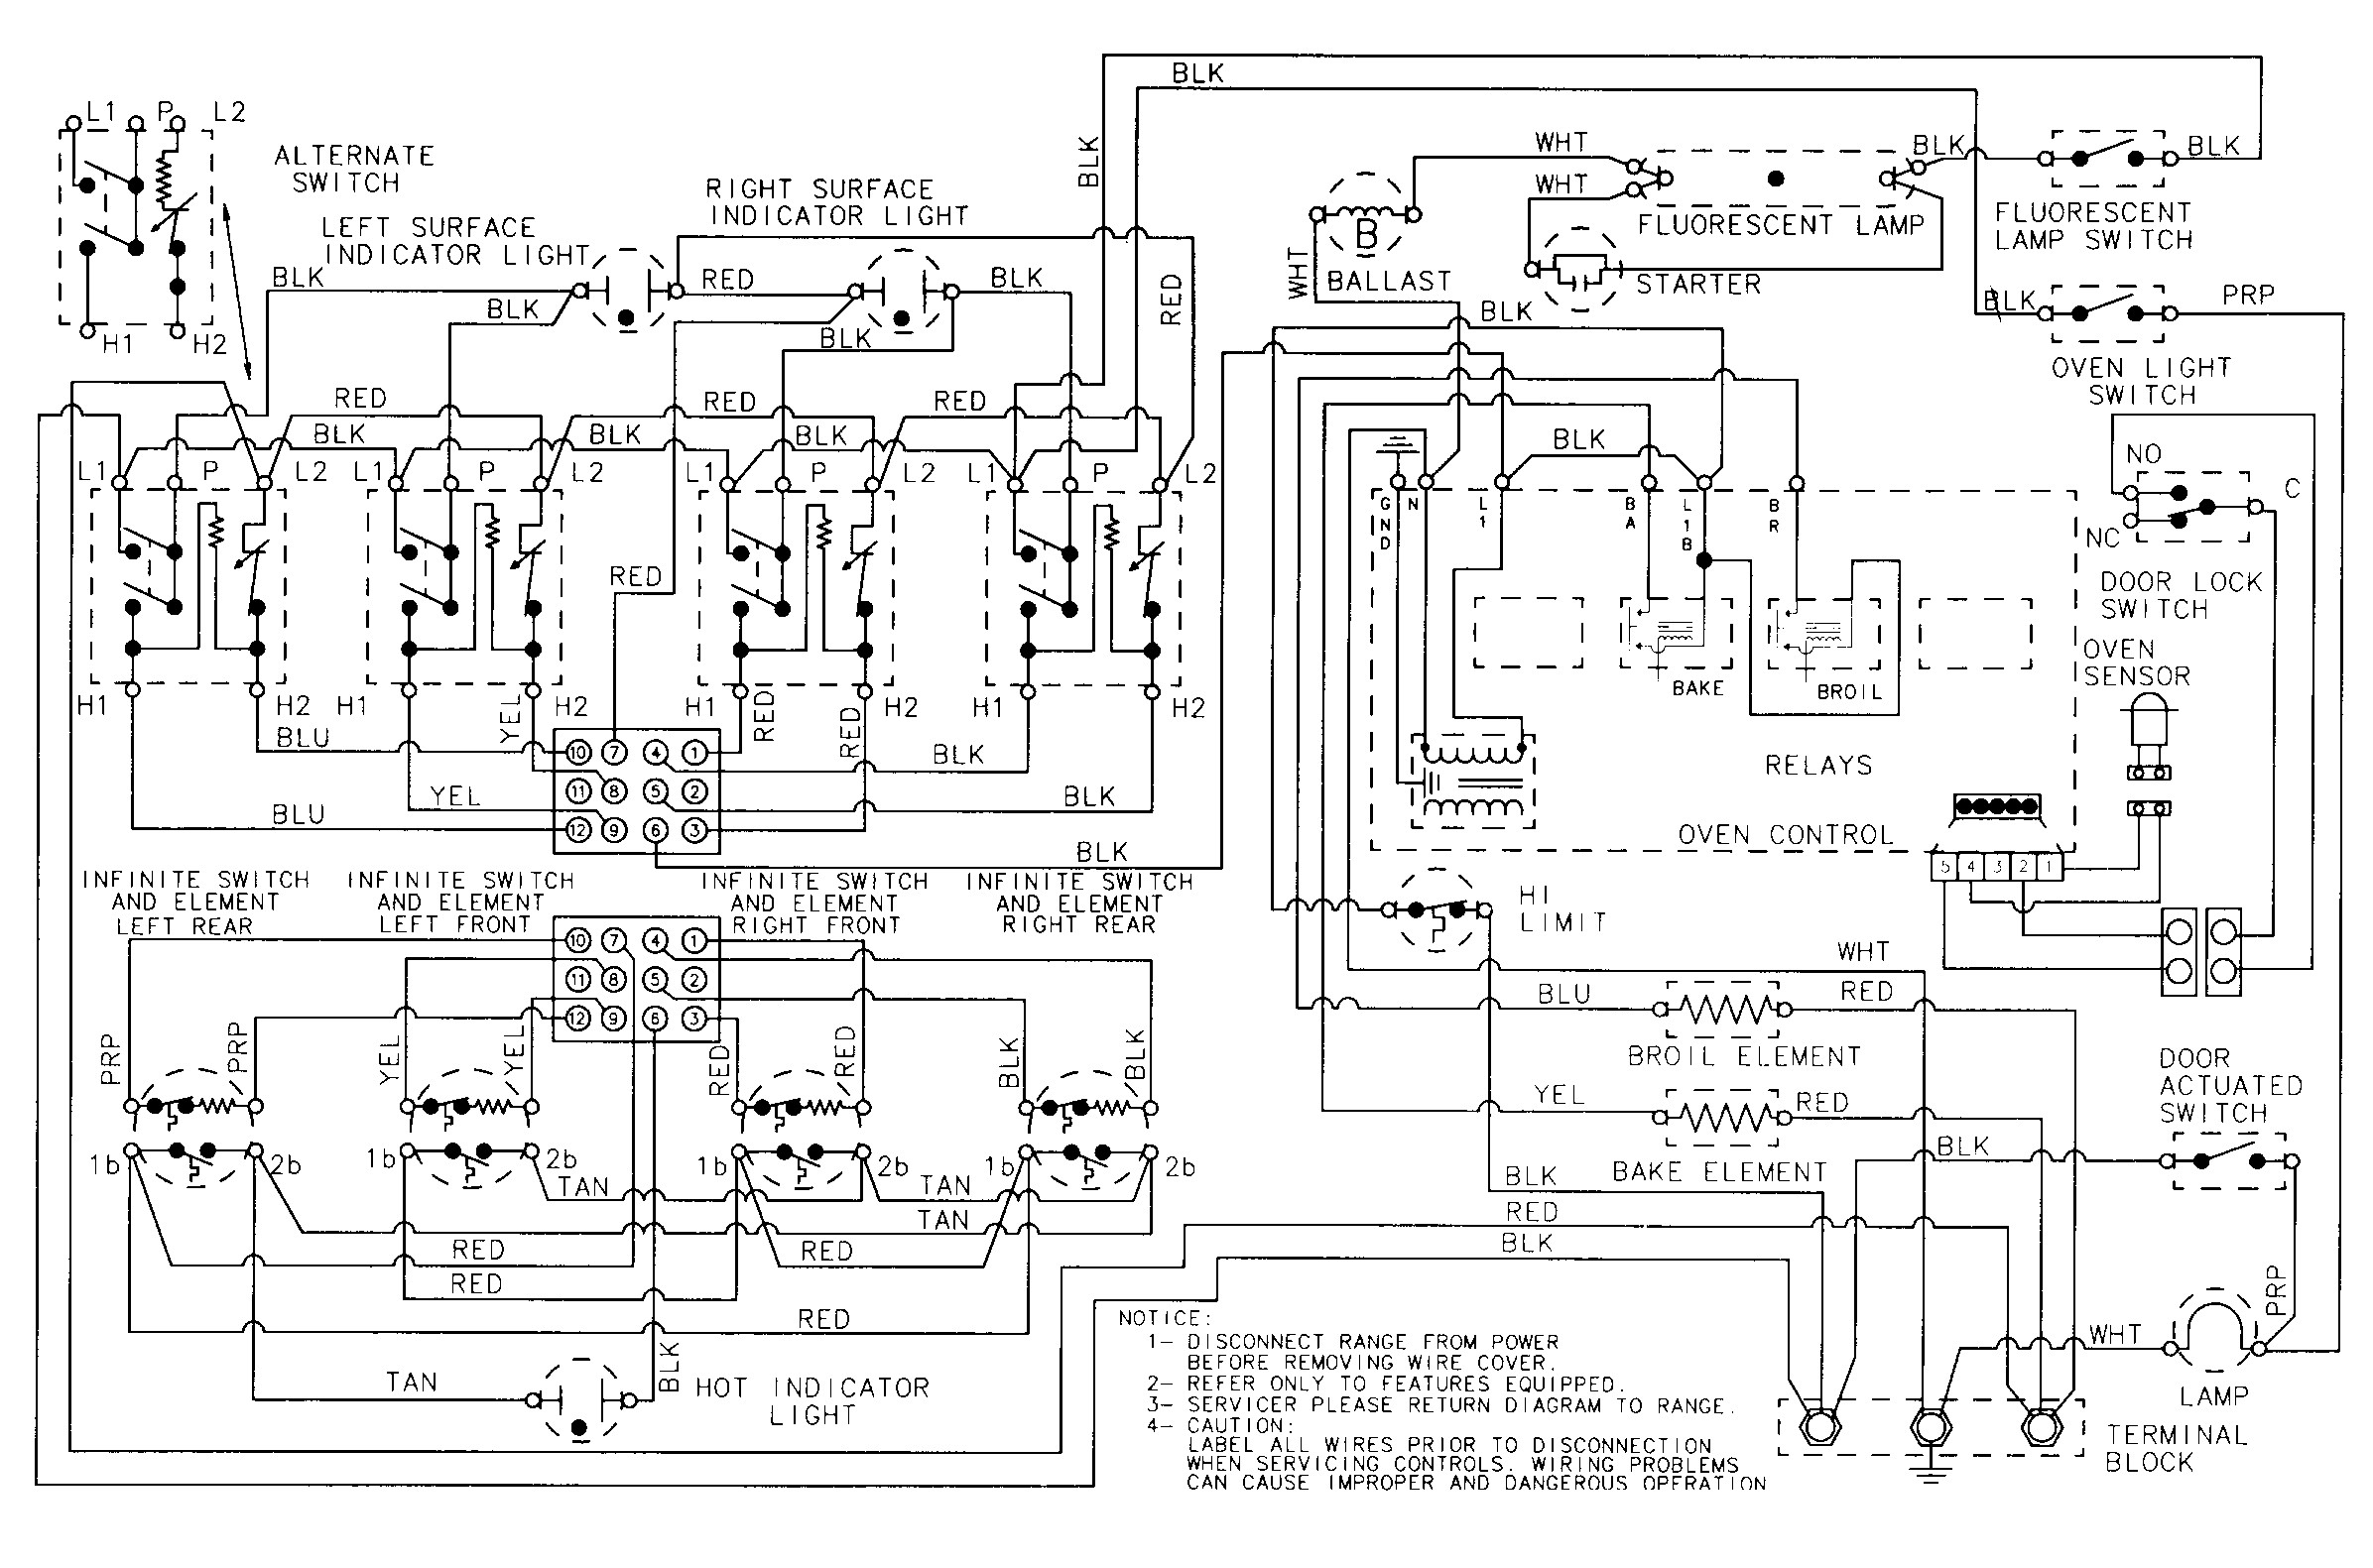 Whirlpool Dryer Wiring Schematic | Free Wiring Diagram on